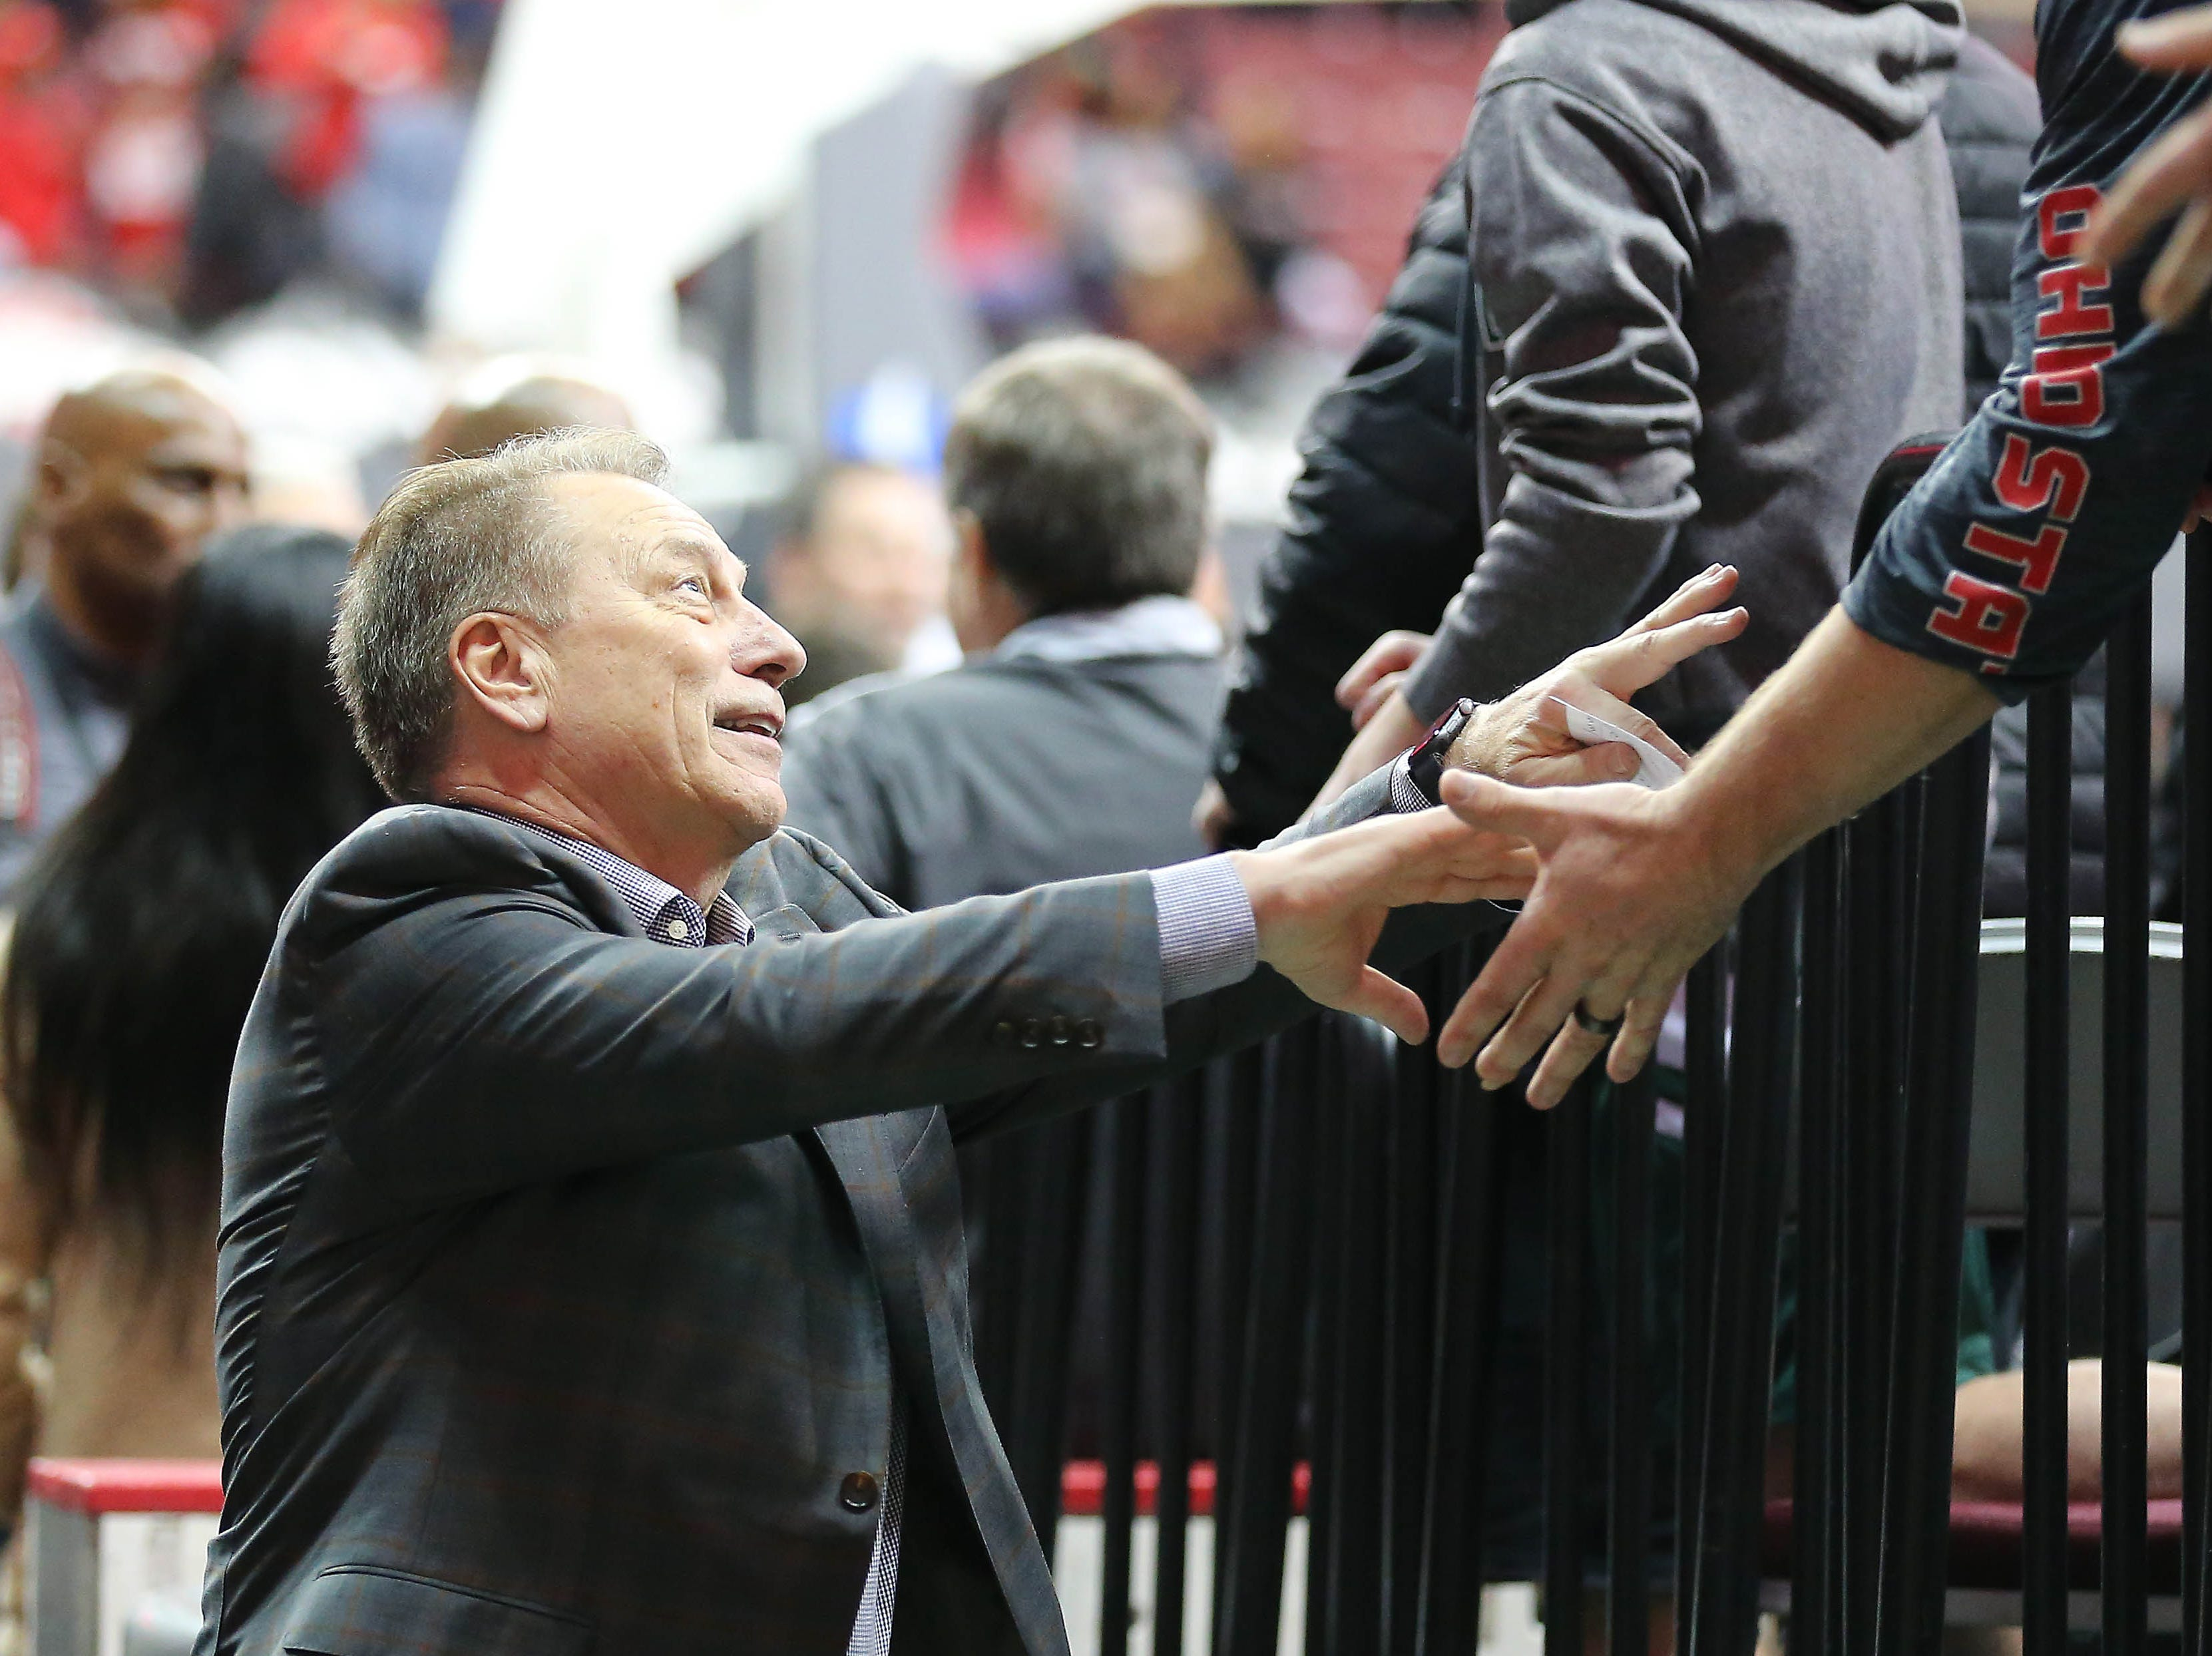 Jan 5, 2019; Columbus, OH, USA; Michigan State Spartans head coach Tom Izzo following the second half against the Ohio State Buckeyes at Value City Arena. Mandatory Credit: Joe Maiorana-USA TODAY Sports